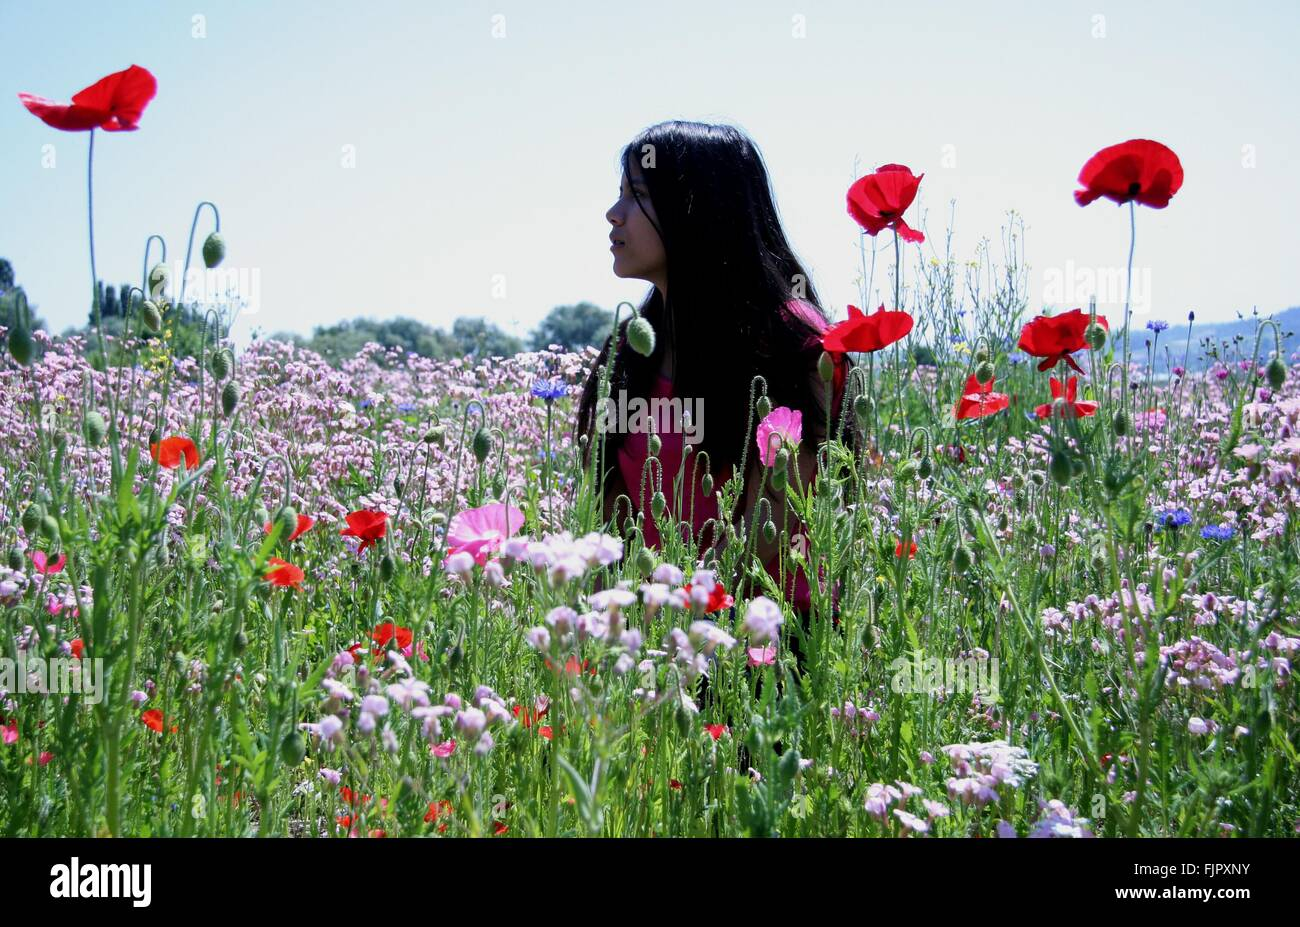 Young Woman Standing On Flower Field Against Sky - Stock Image